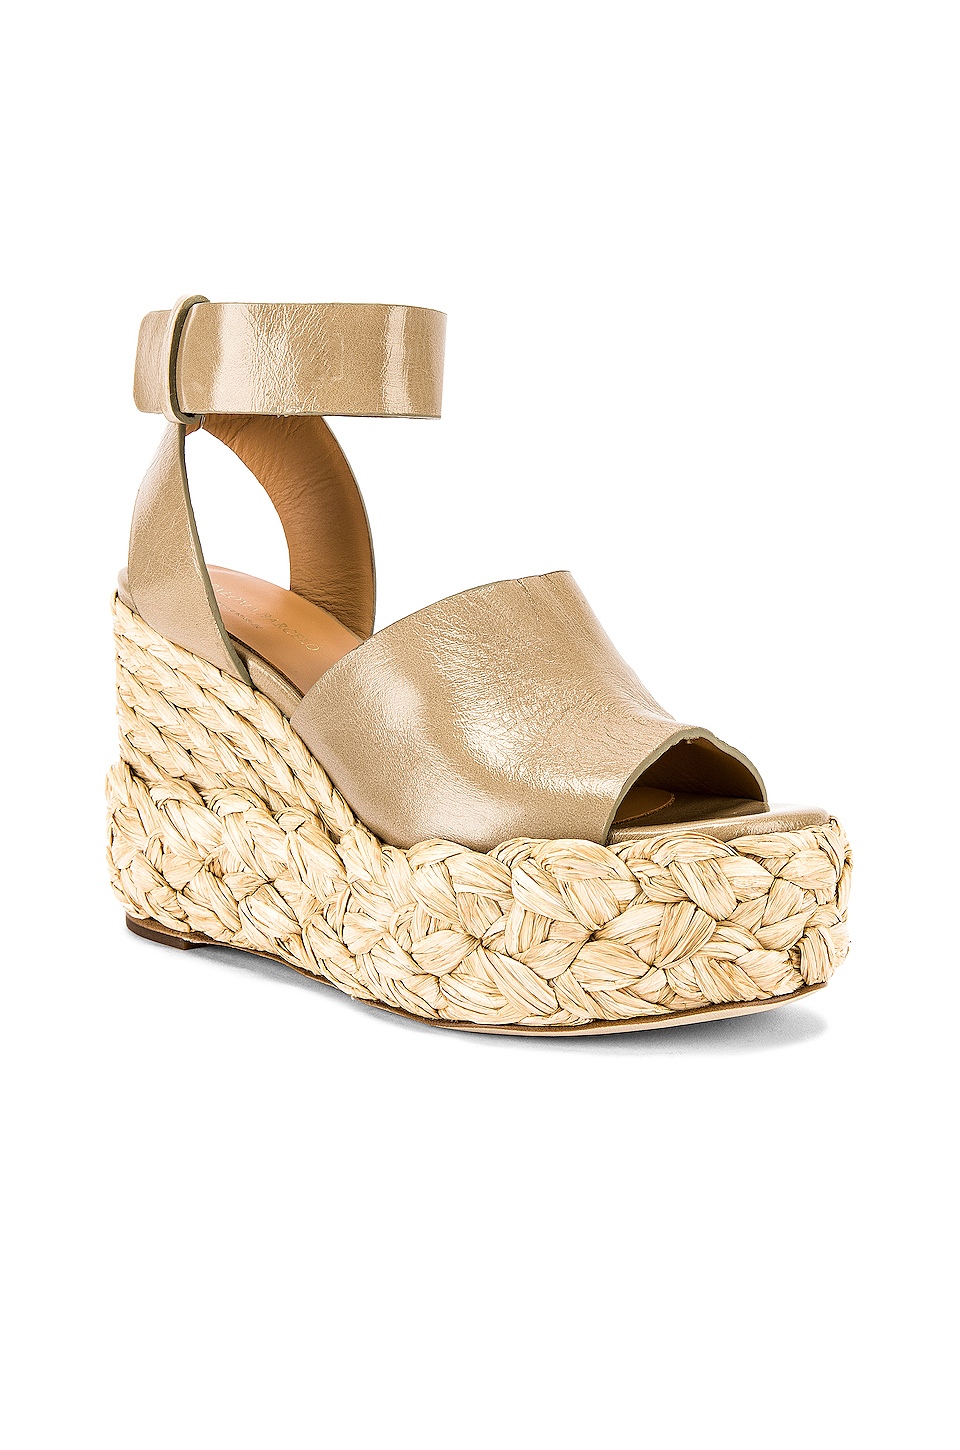 finest selection 47f93 4062d Paule Lory Wedge, Paloma Barcelo